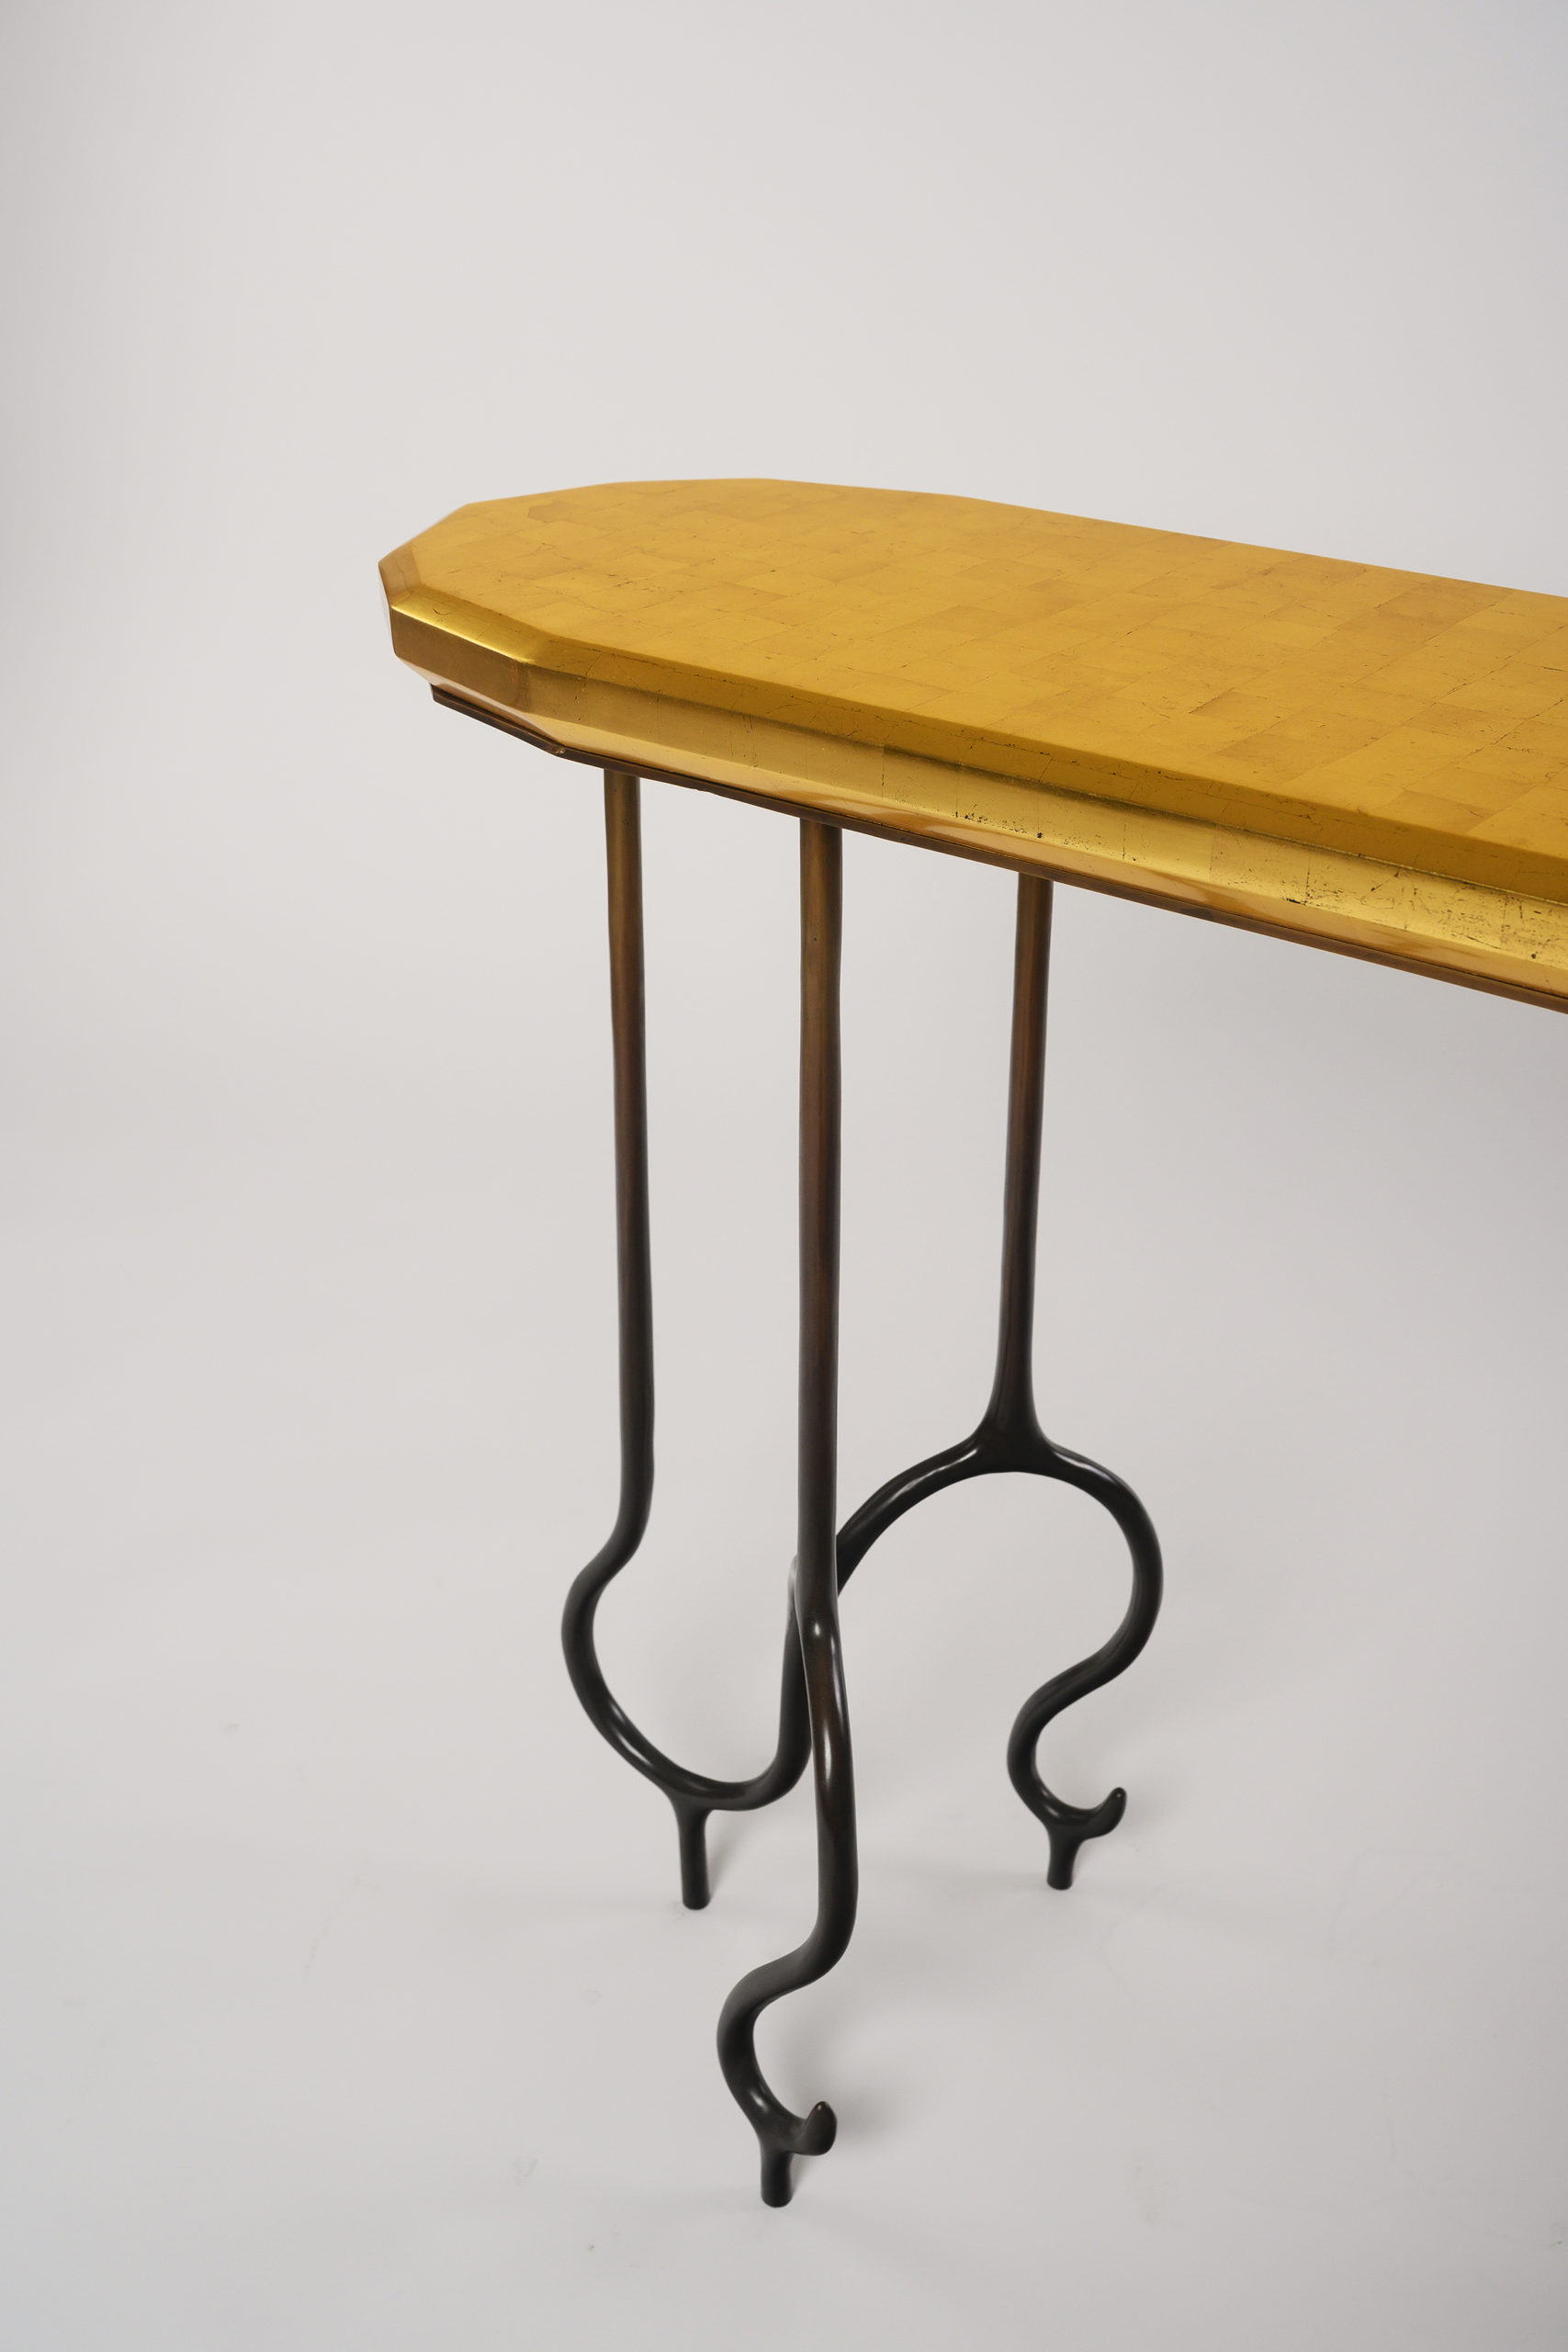 NYDC_WNWN_products_david_sutherland_elan_atelier_Faroh_Console_BEE_5112